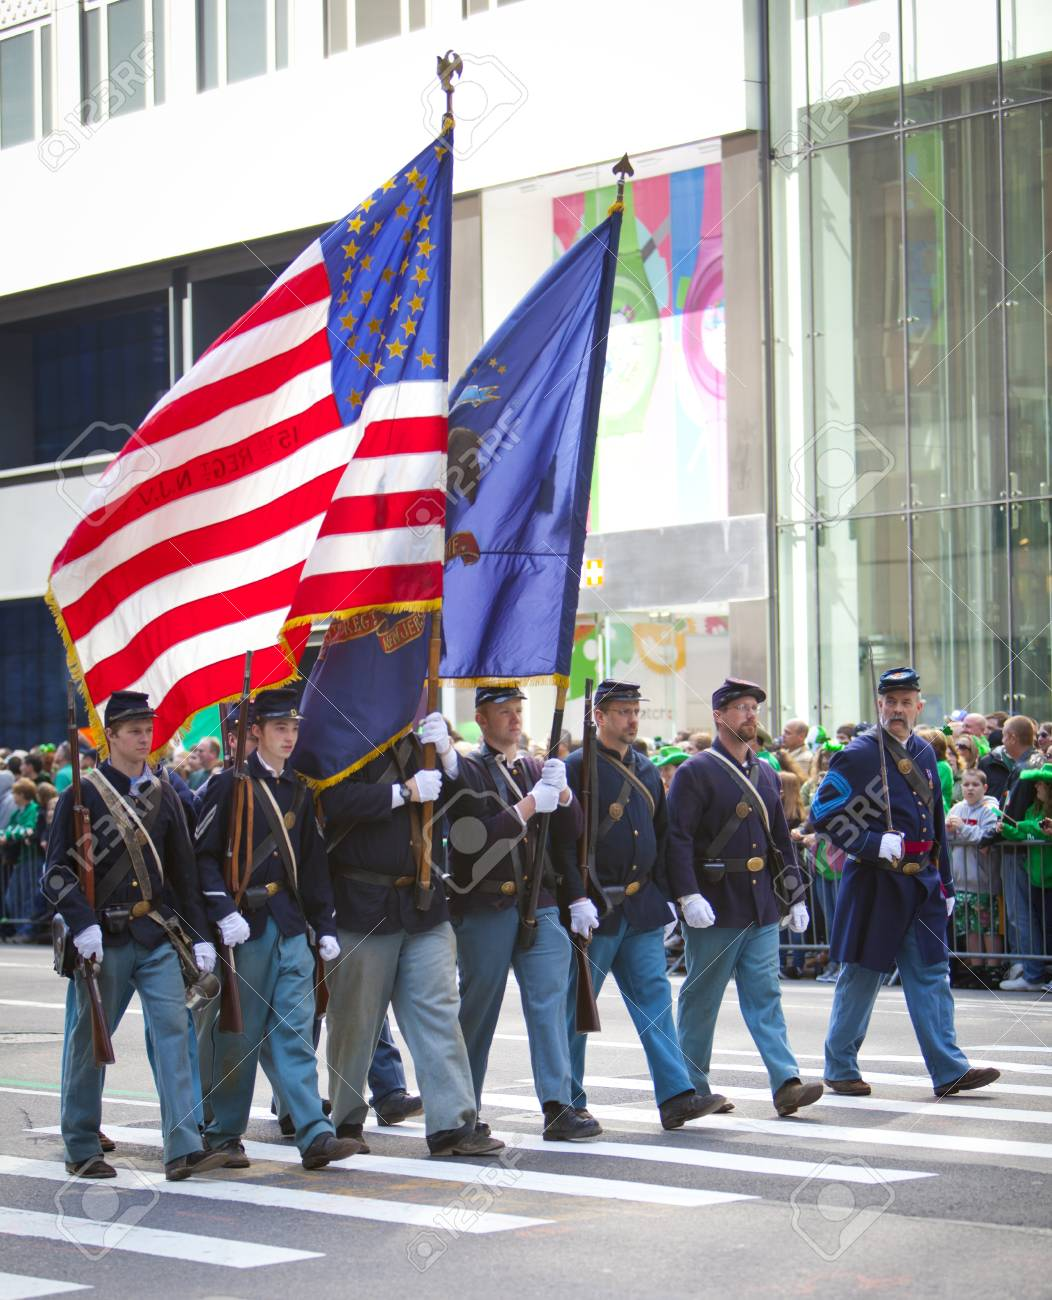 NEW YORK, NY, USA MAR 17: Marching US miltary soldiers at the St. Patrick's Day Parade on March 17, 2012 in New York City, United States. Stock Photo - 13062605